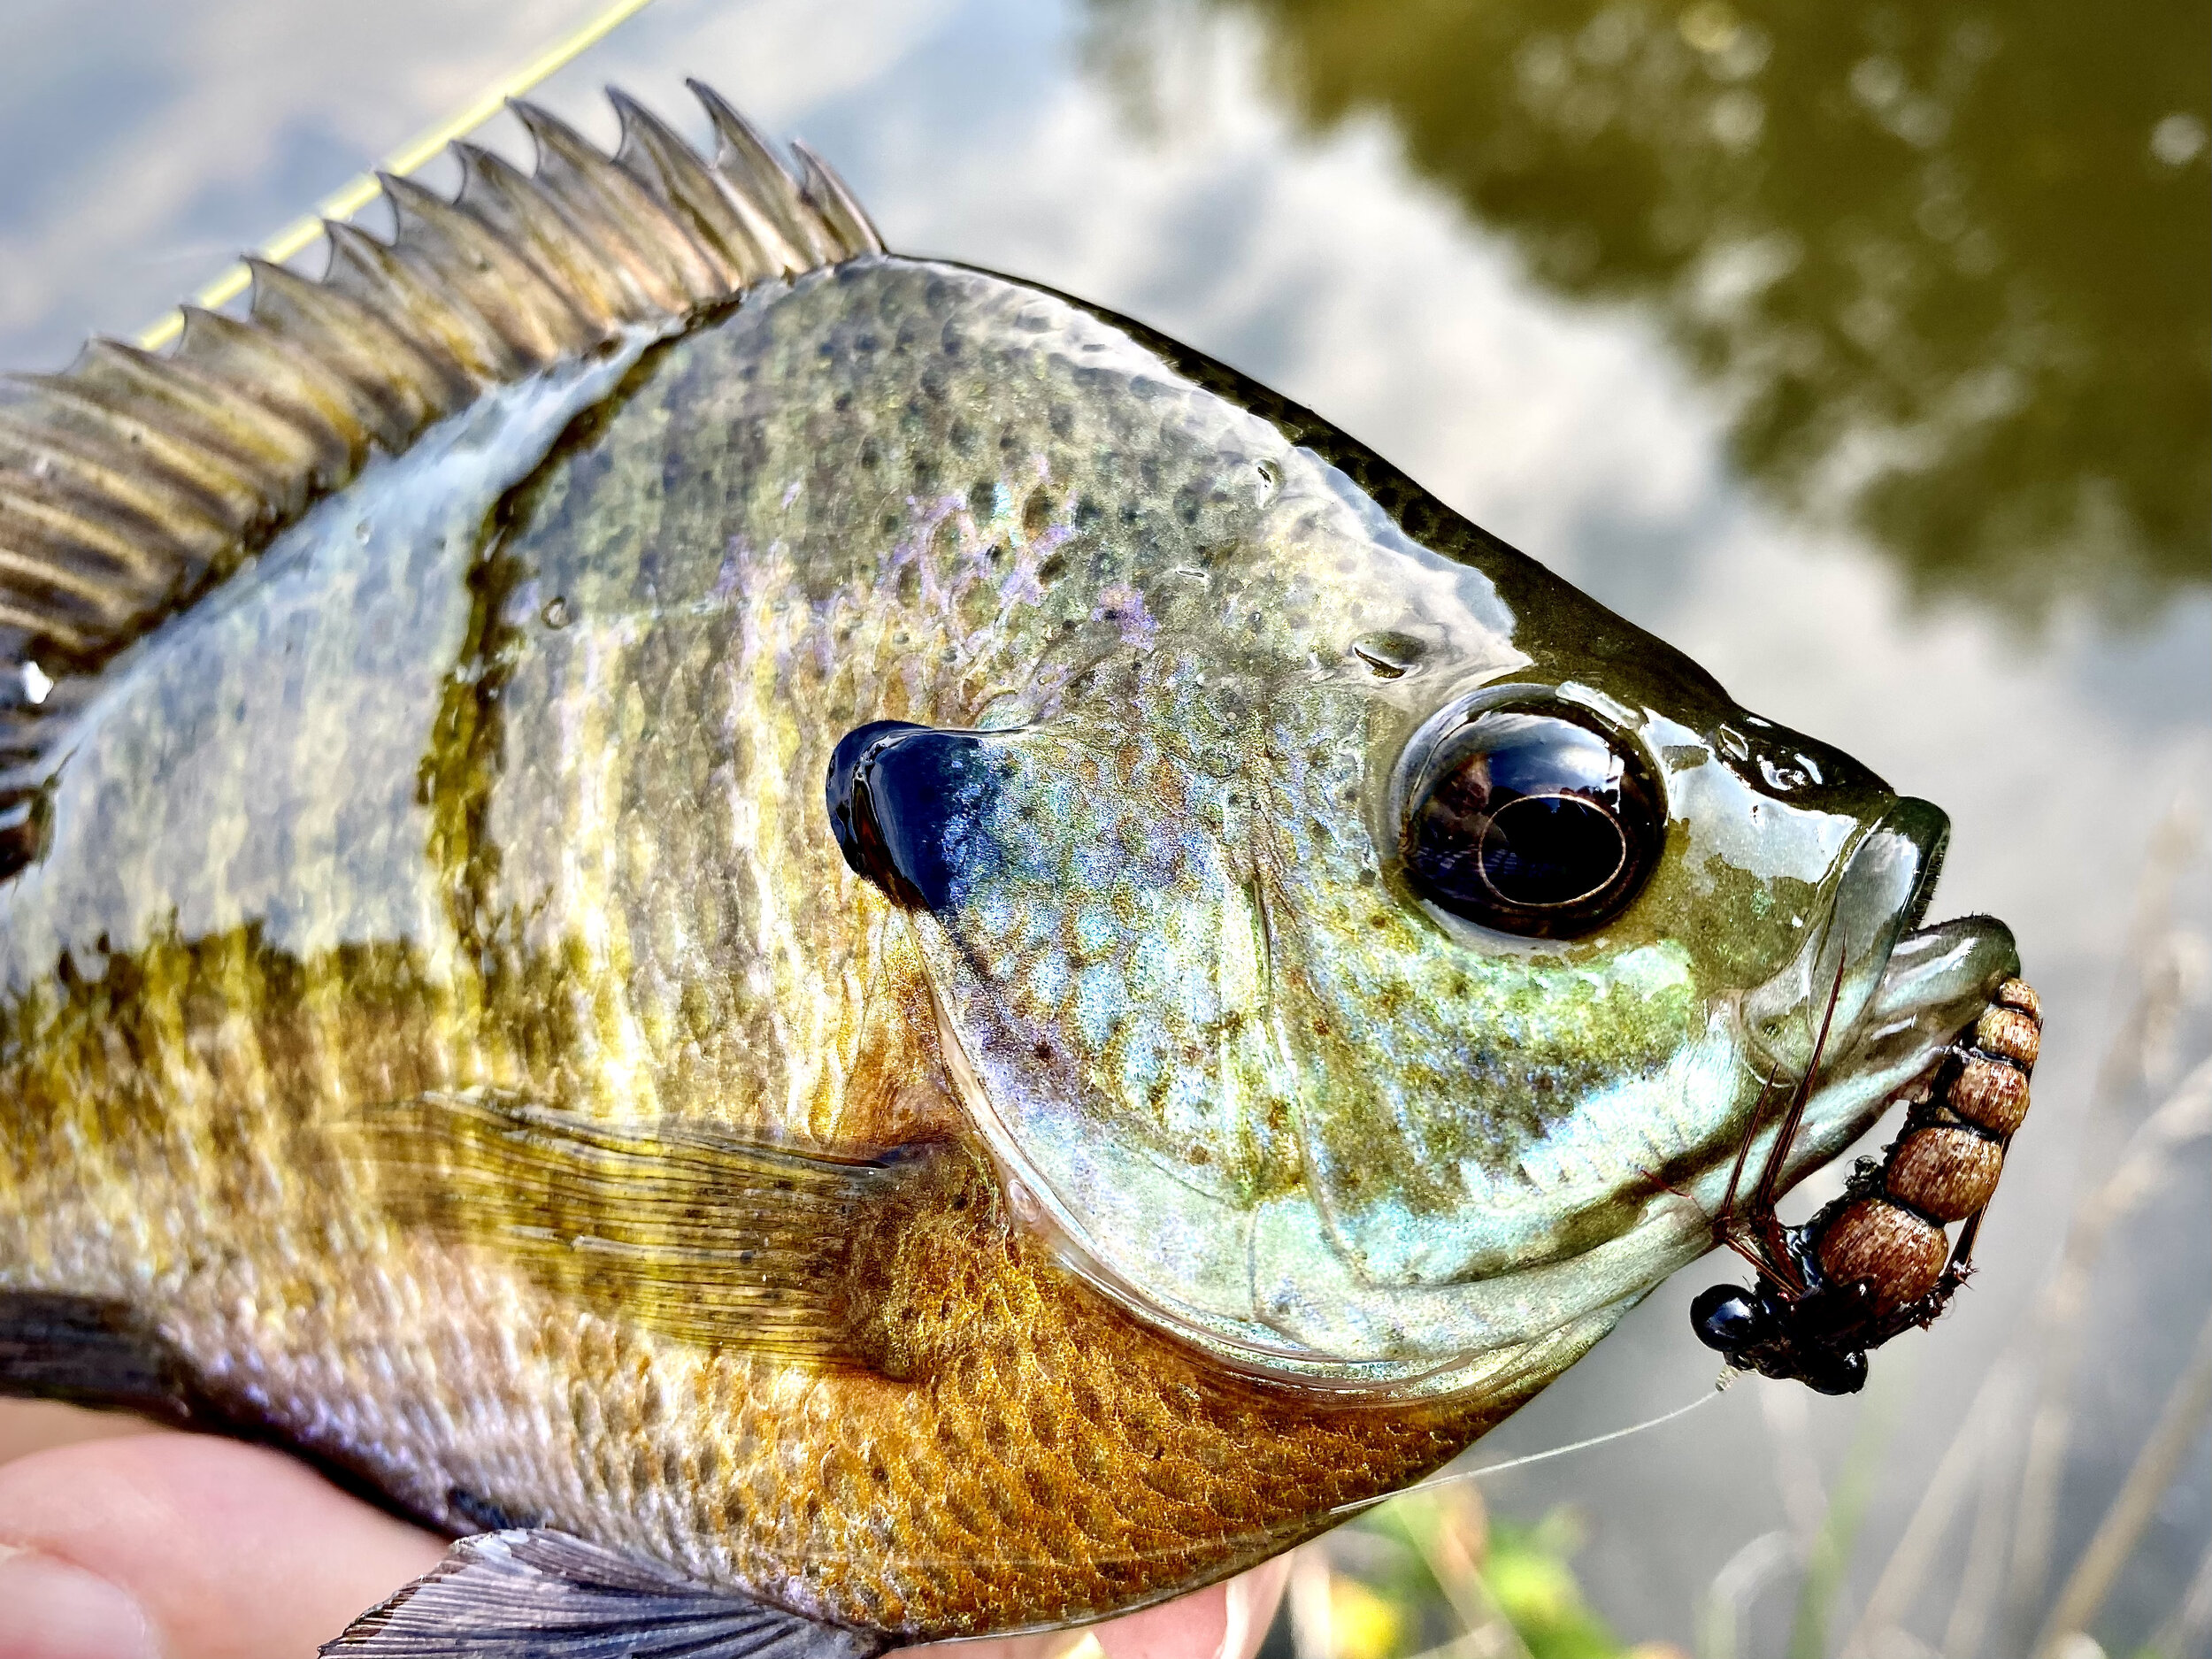 Floating nymph patterns fished on sinking lines can be an effective way to catch panfish holding in deep water.